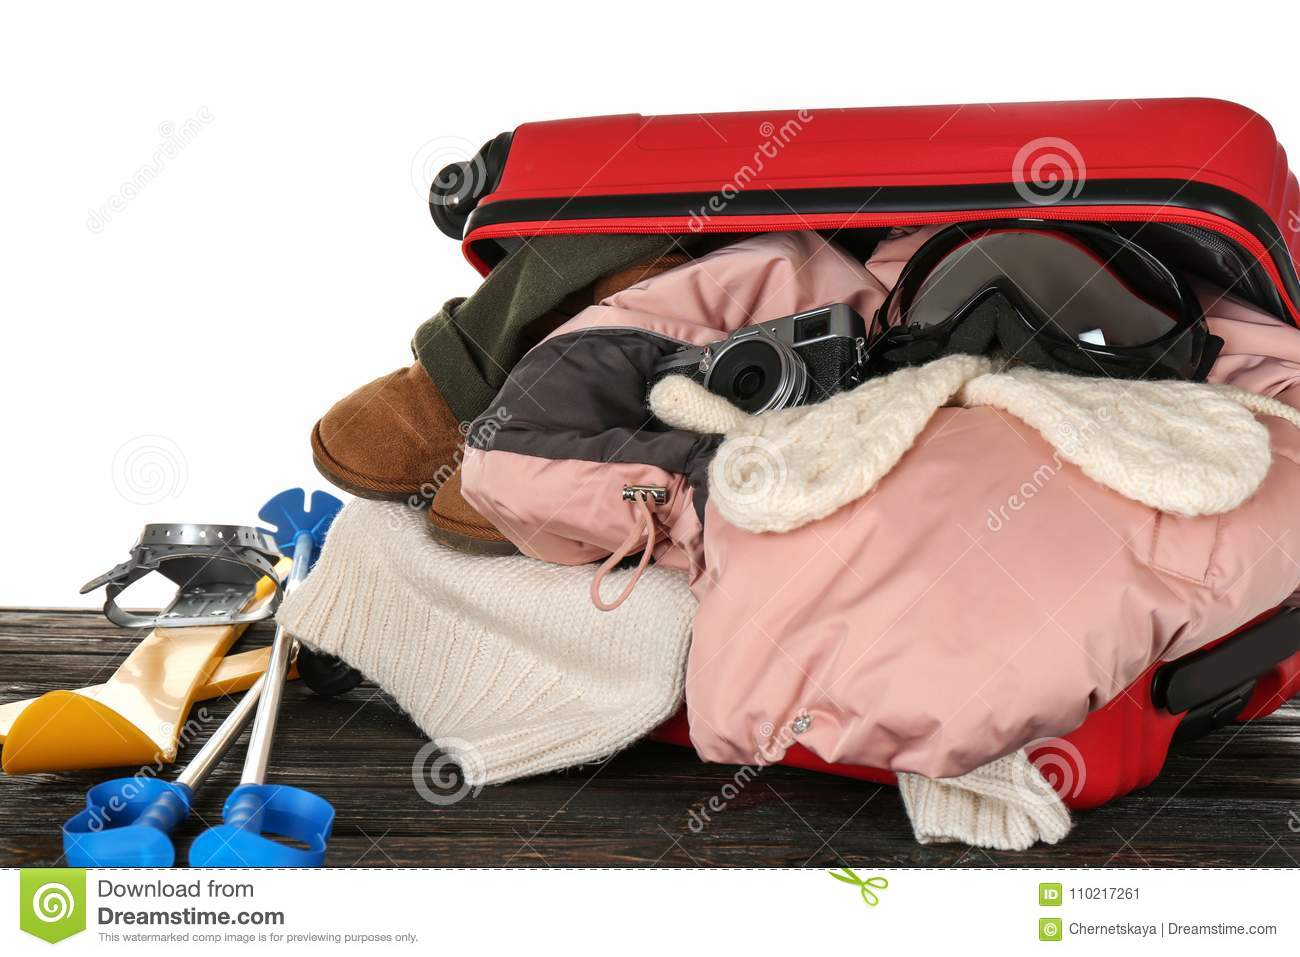 cbd6fbe5e99 Open Suitcase With Warm Clothes And Ski Outfit Stock Image - Image ...